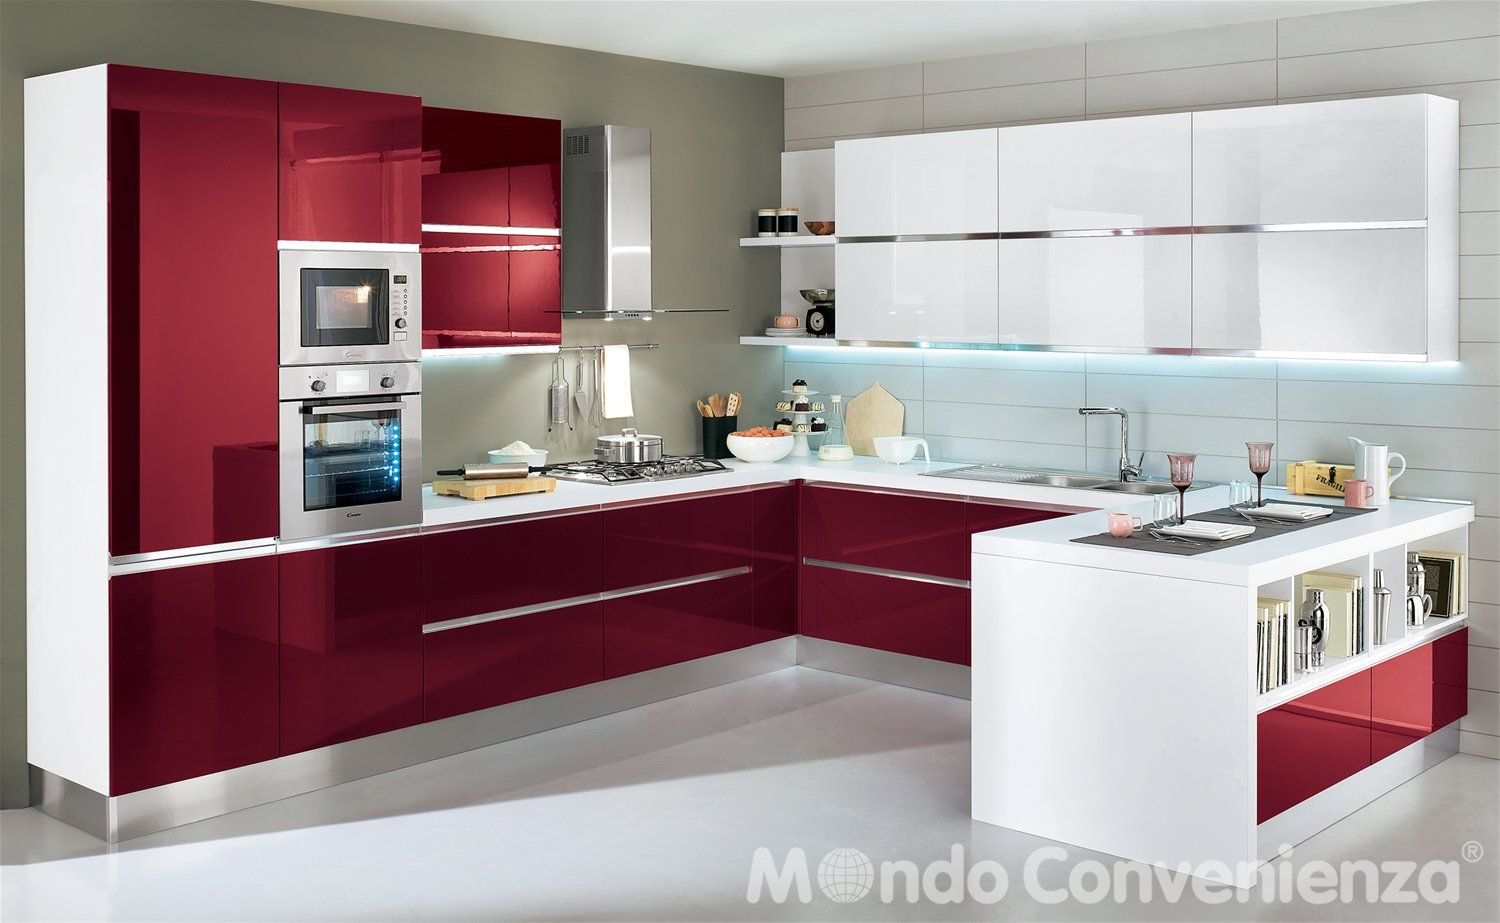 Cucina Veronica - Mondo Convenienza | Kitchen | Pinterest